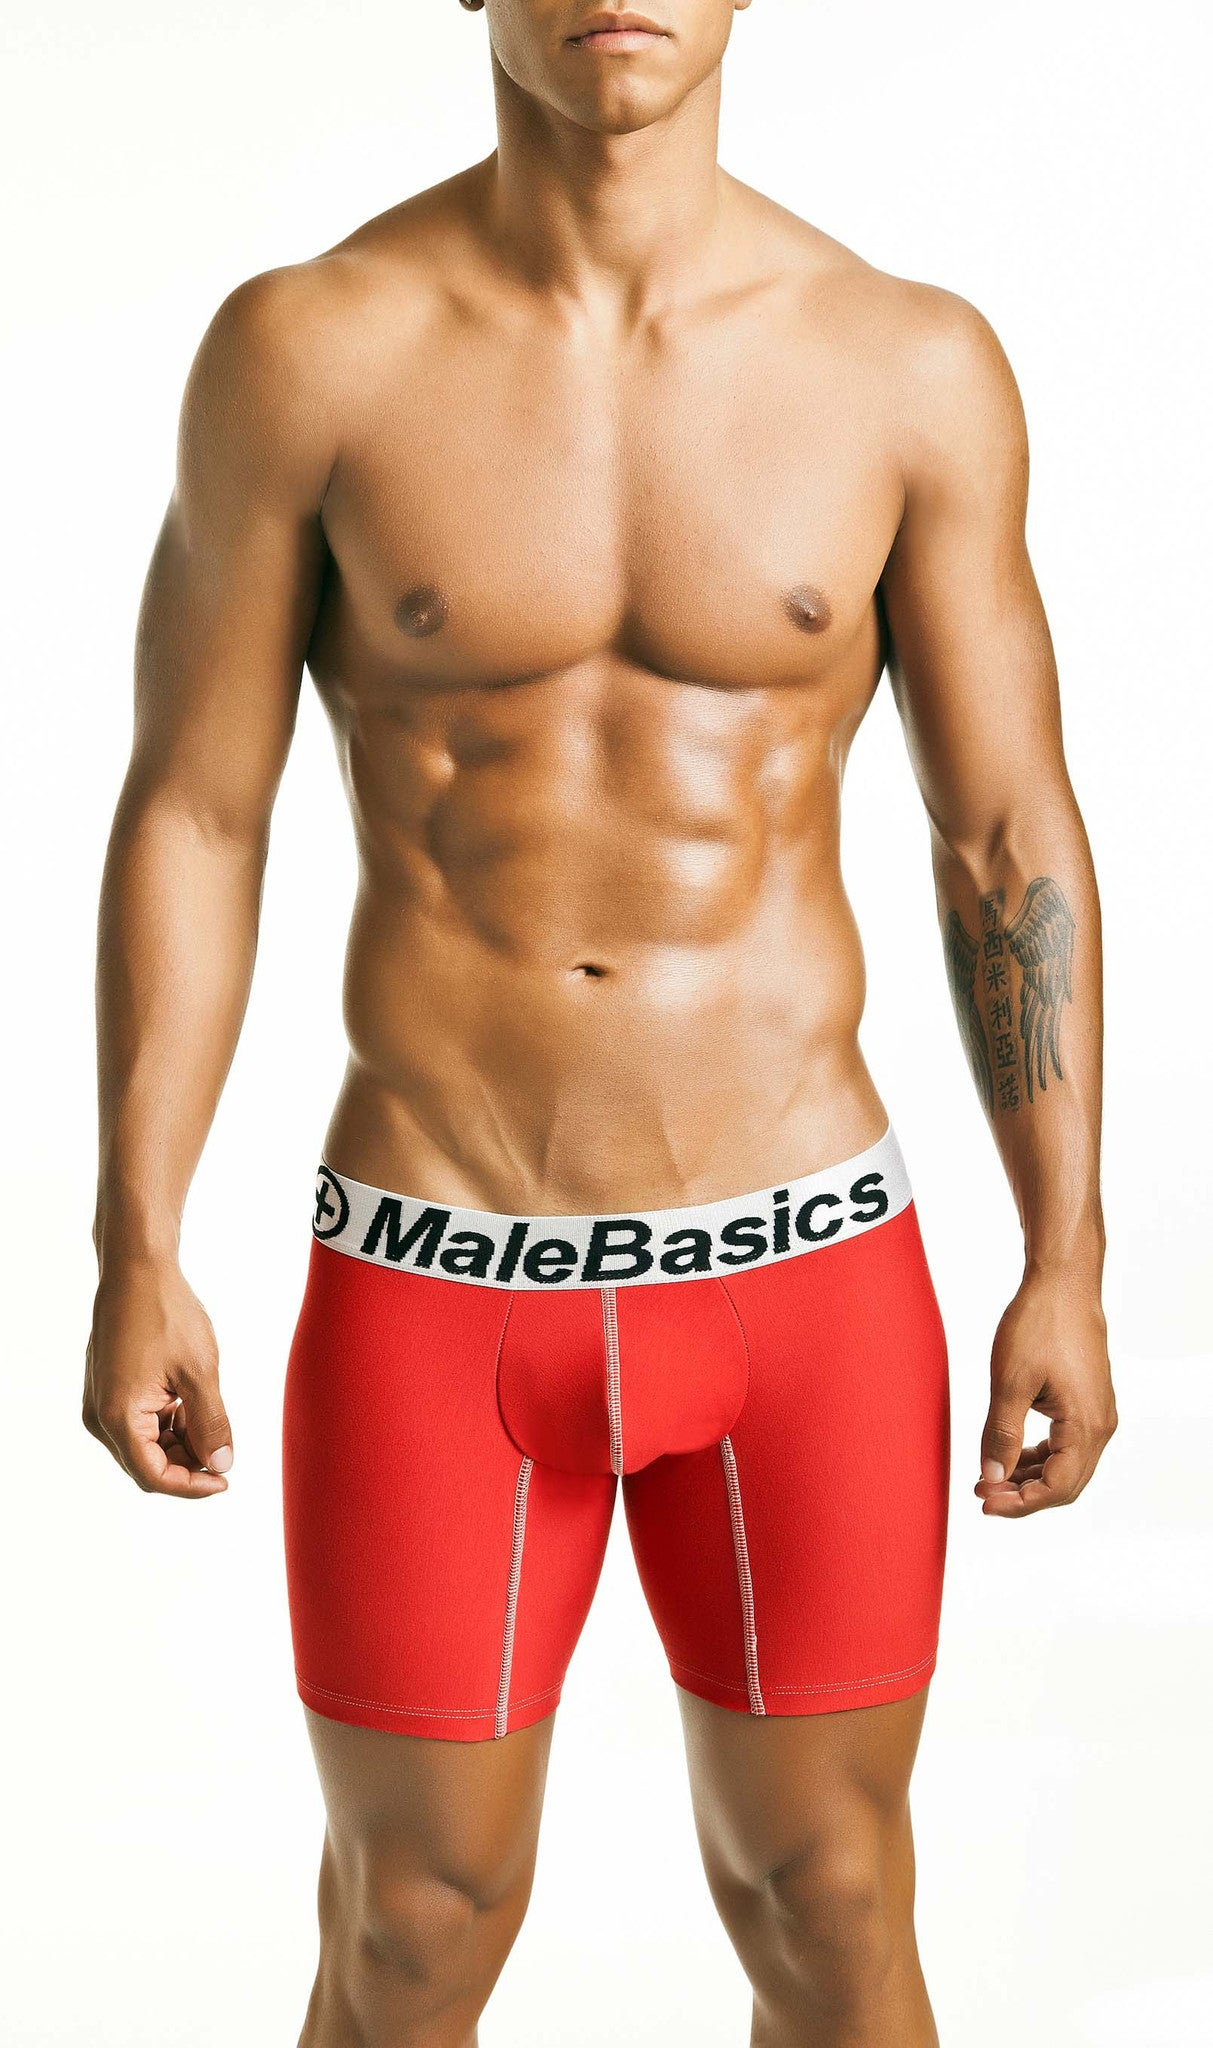 Malebasics Men's Cotton Fitted Boxer Brief - Malebasics Canada - 3